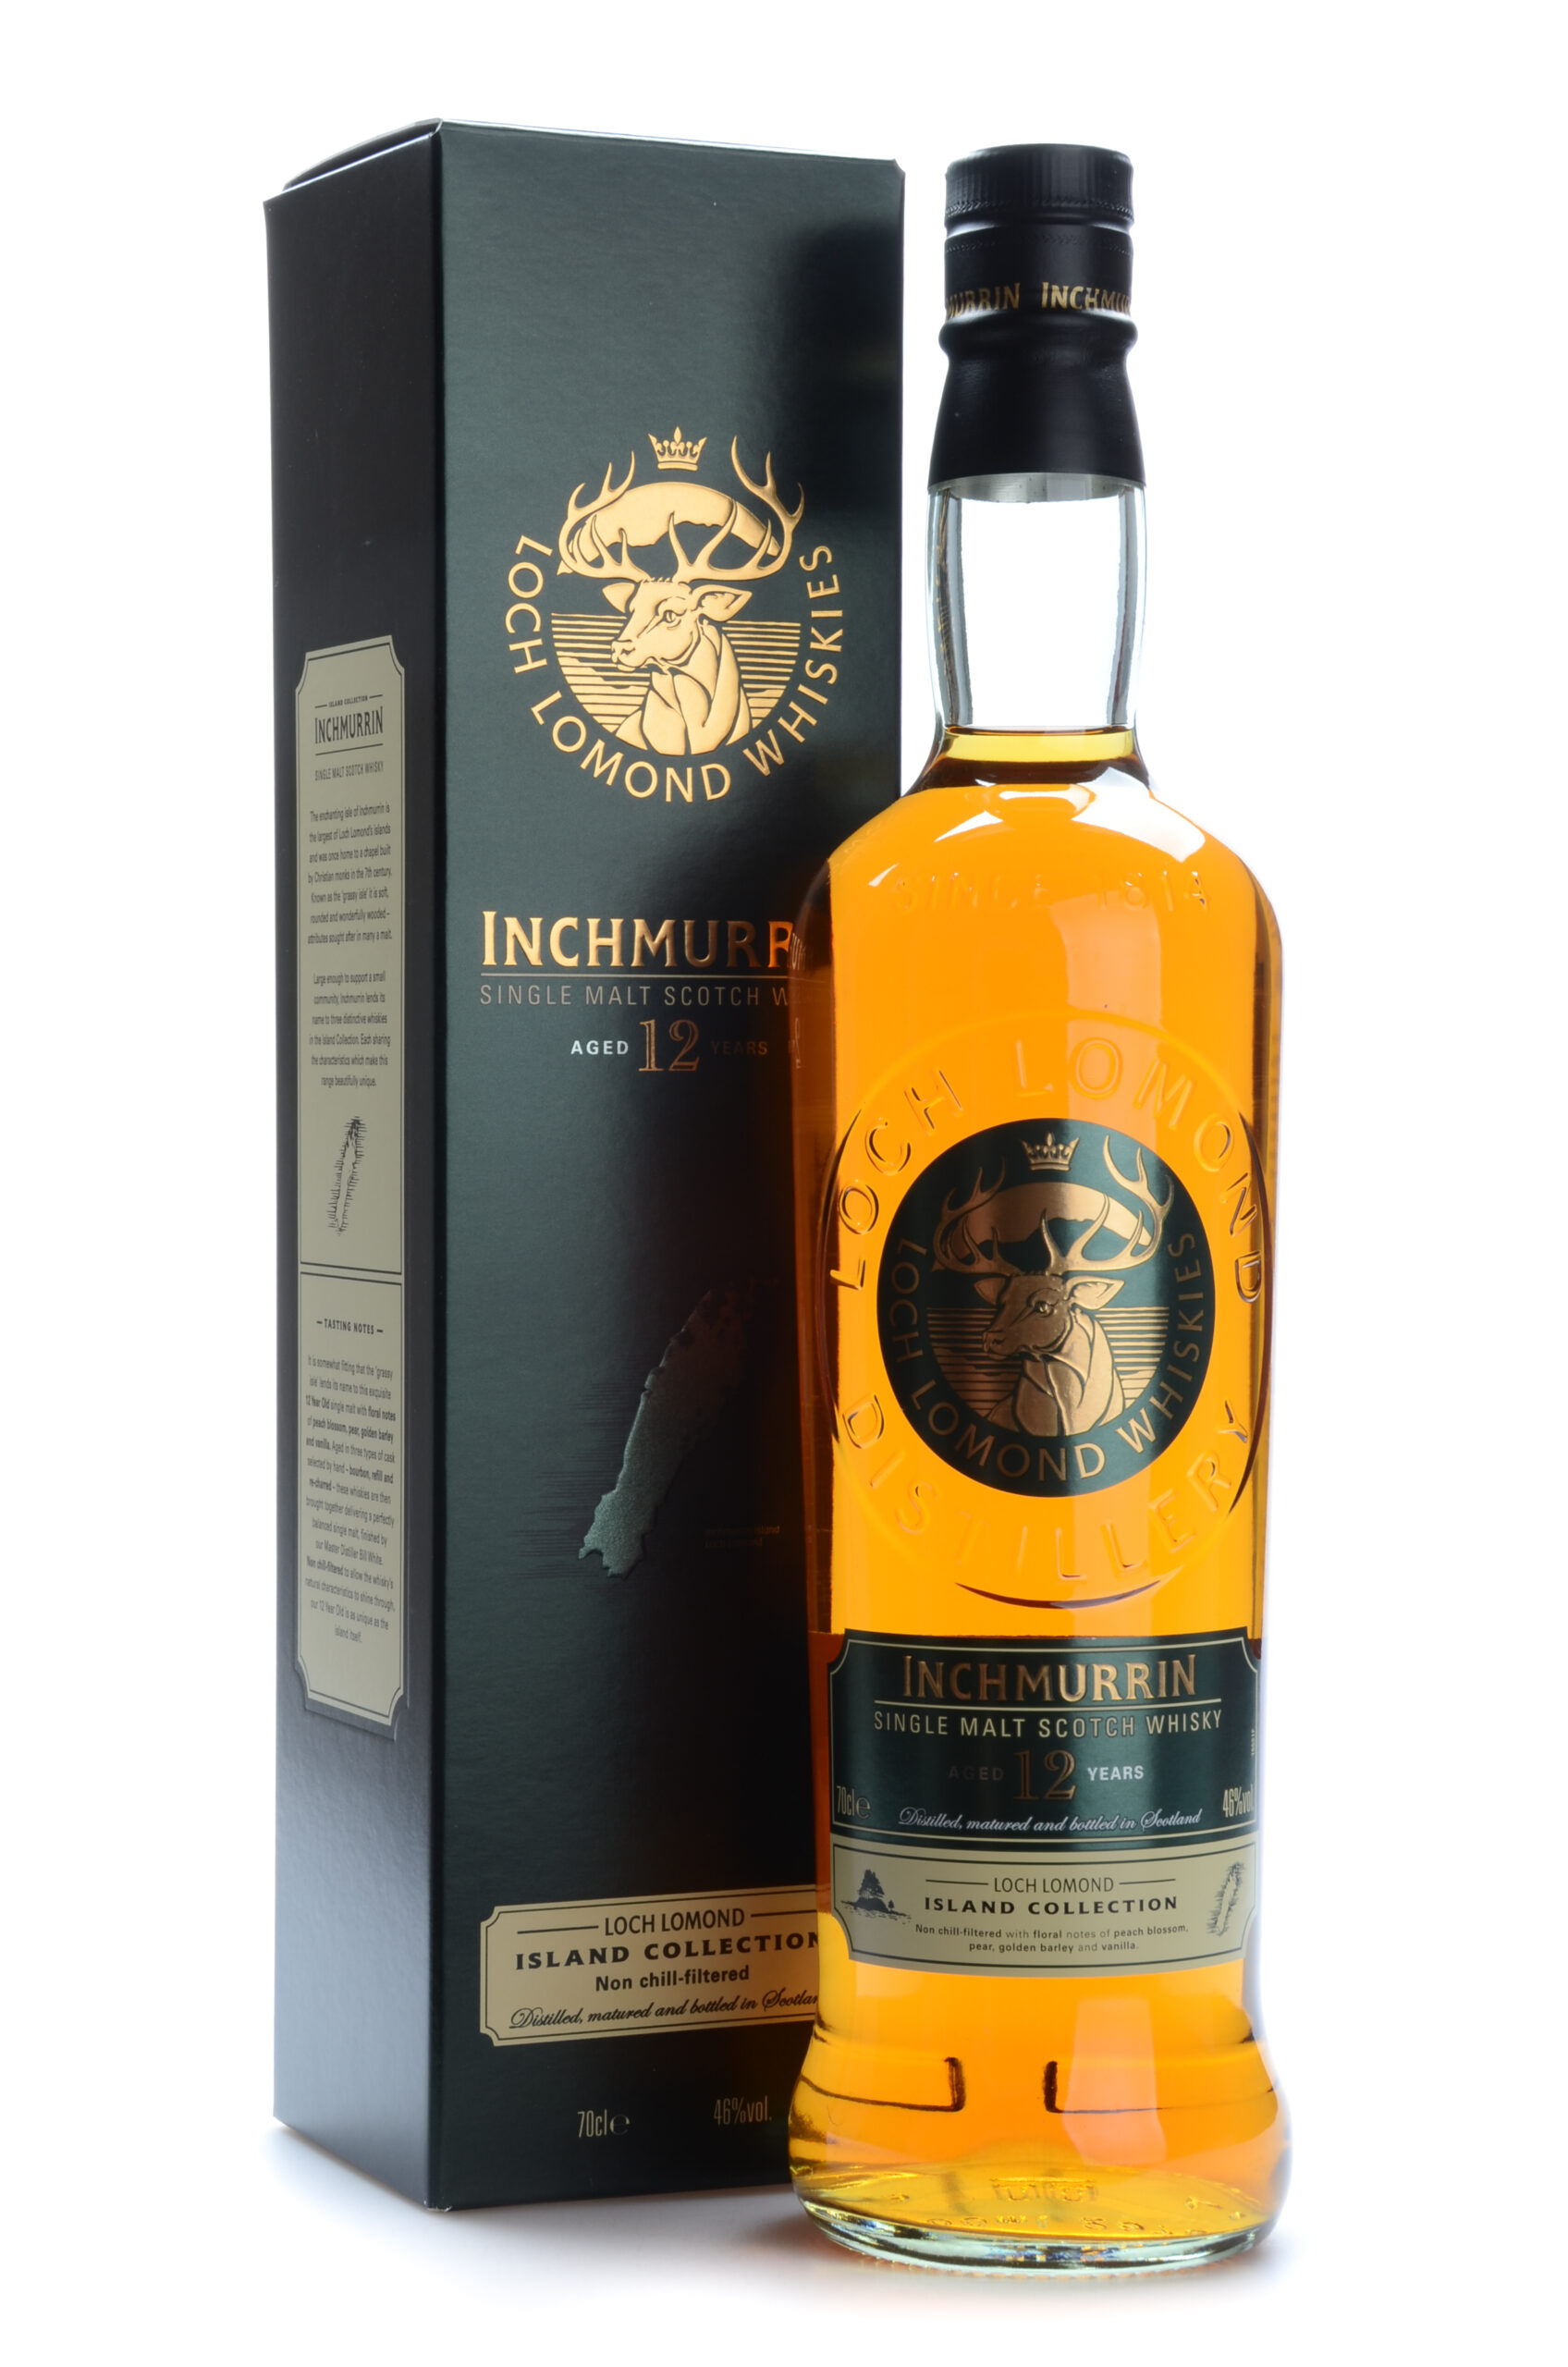 Loch Lomond 12 years Inchmurrin